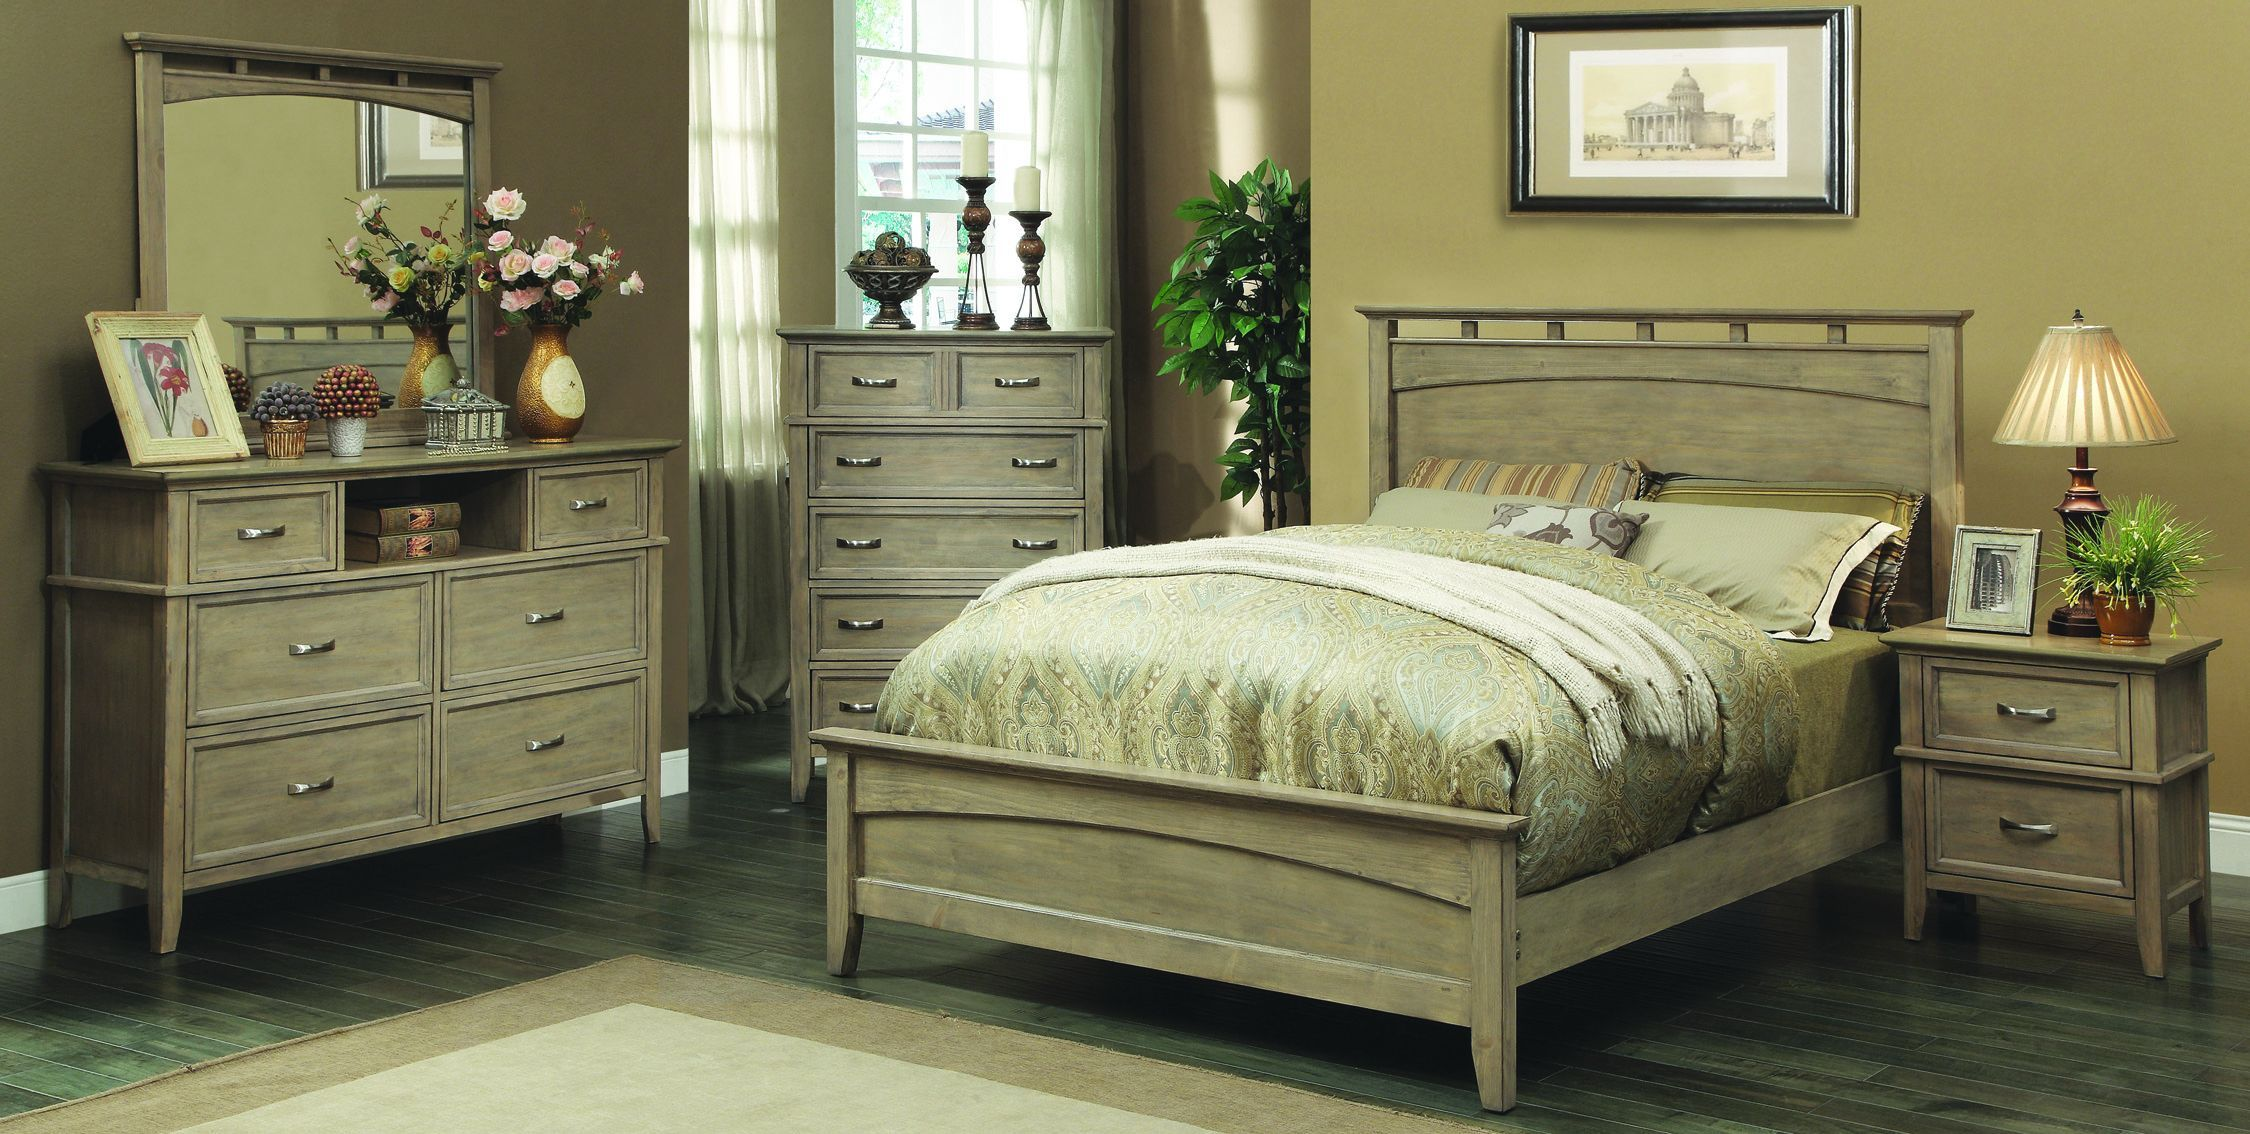 bathroom furniture bedroom images attractive collection oak in weathered grey including danube vanity eo